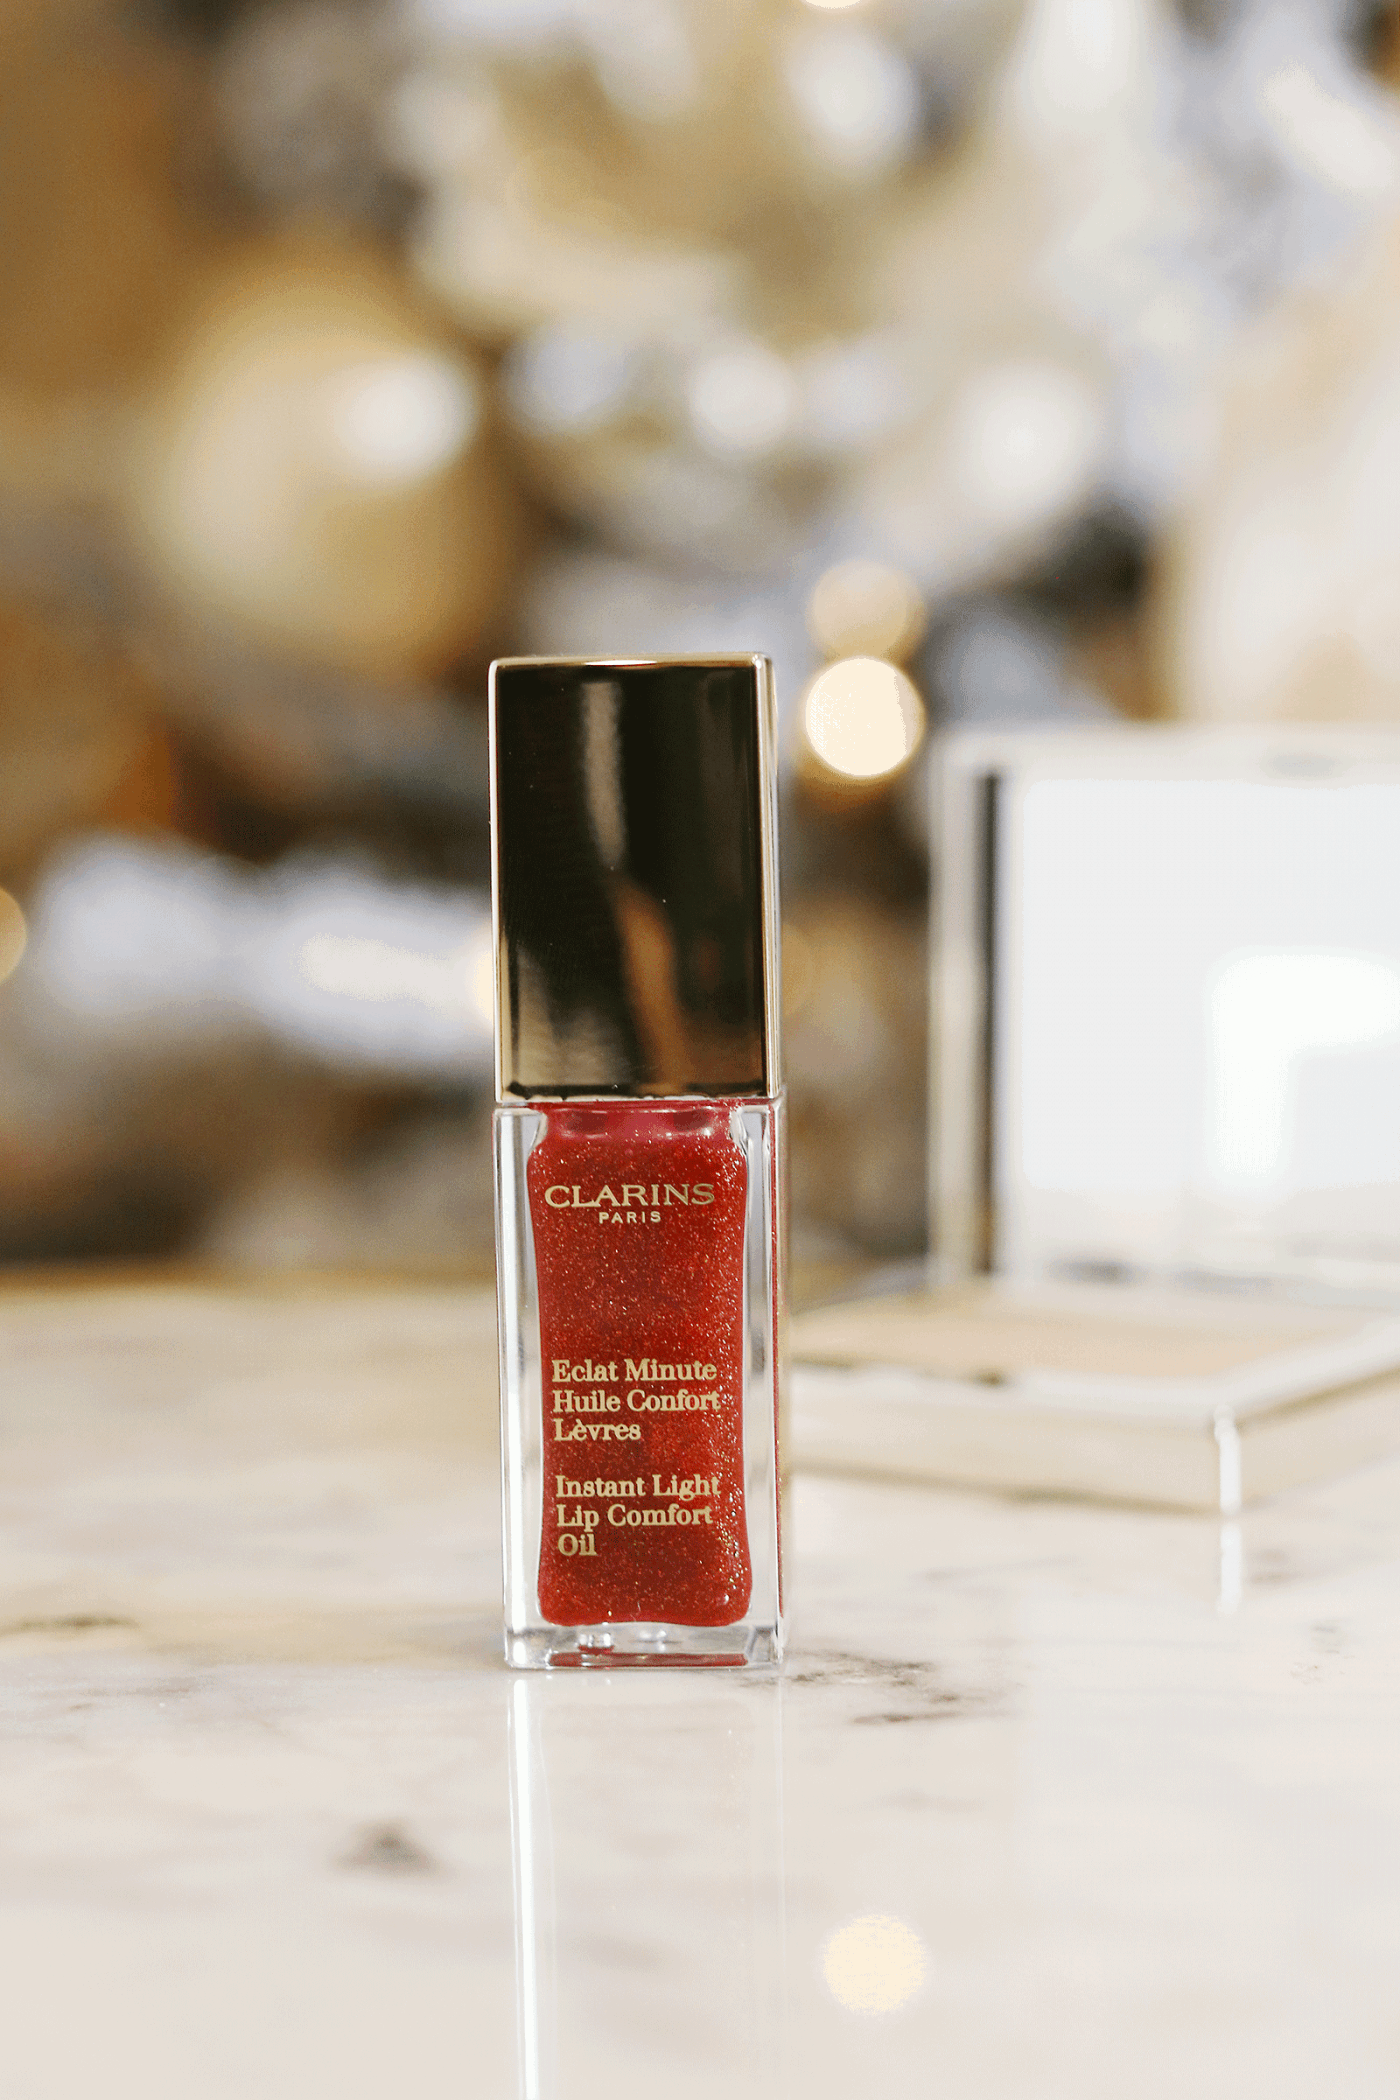 Bookmark this post ASAP if you are looking for an easy holiday beauty look. Los Angeles Blogger Makeup Life and Love is sharing her easy holiday beauty look in 3 easy steps thanks to Clarins Shimmer and Shine collection! See them here!